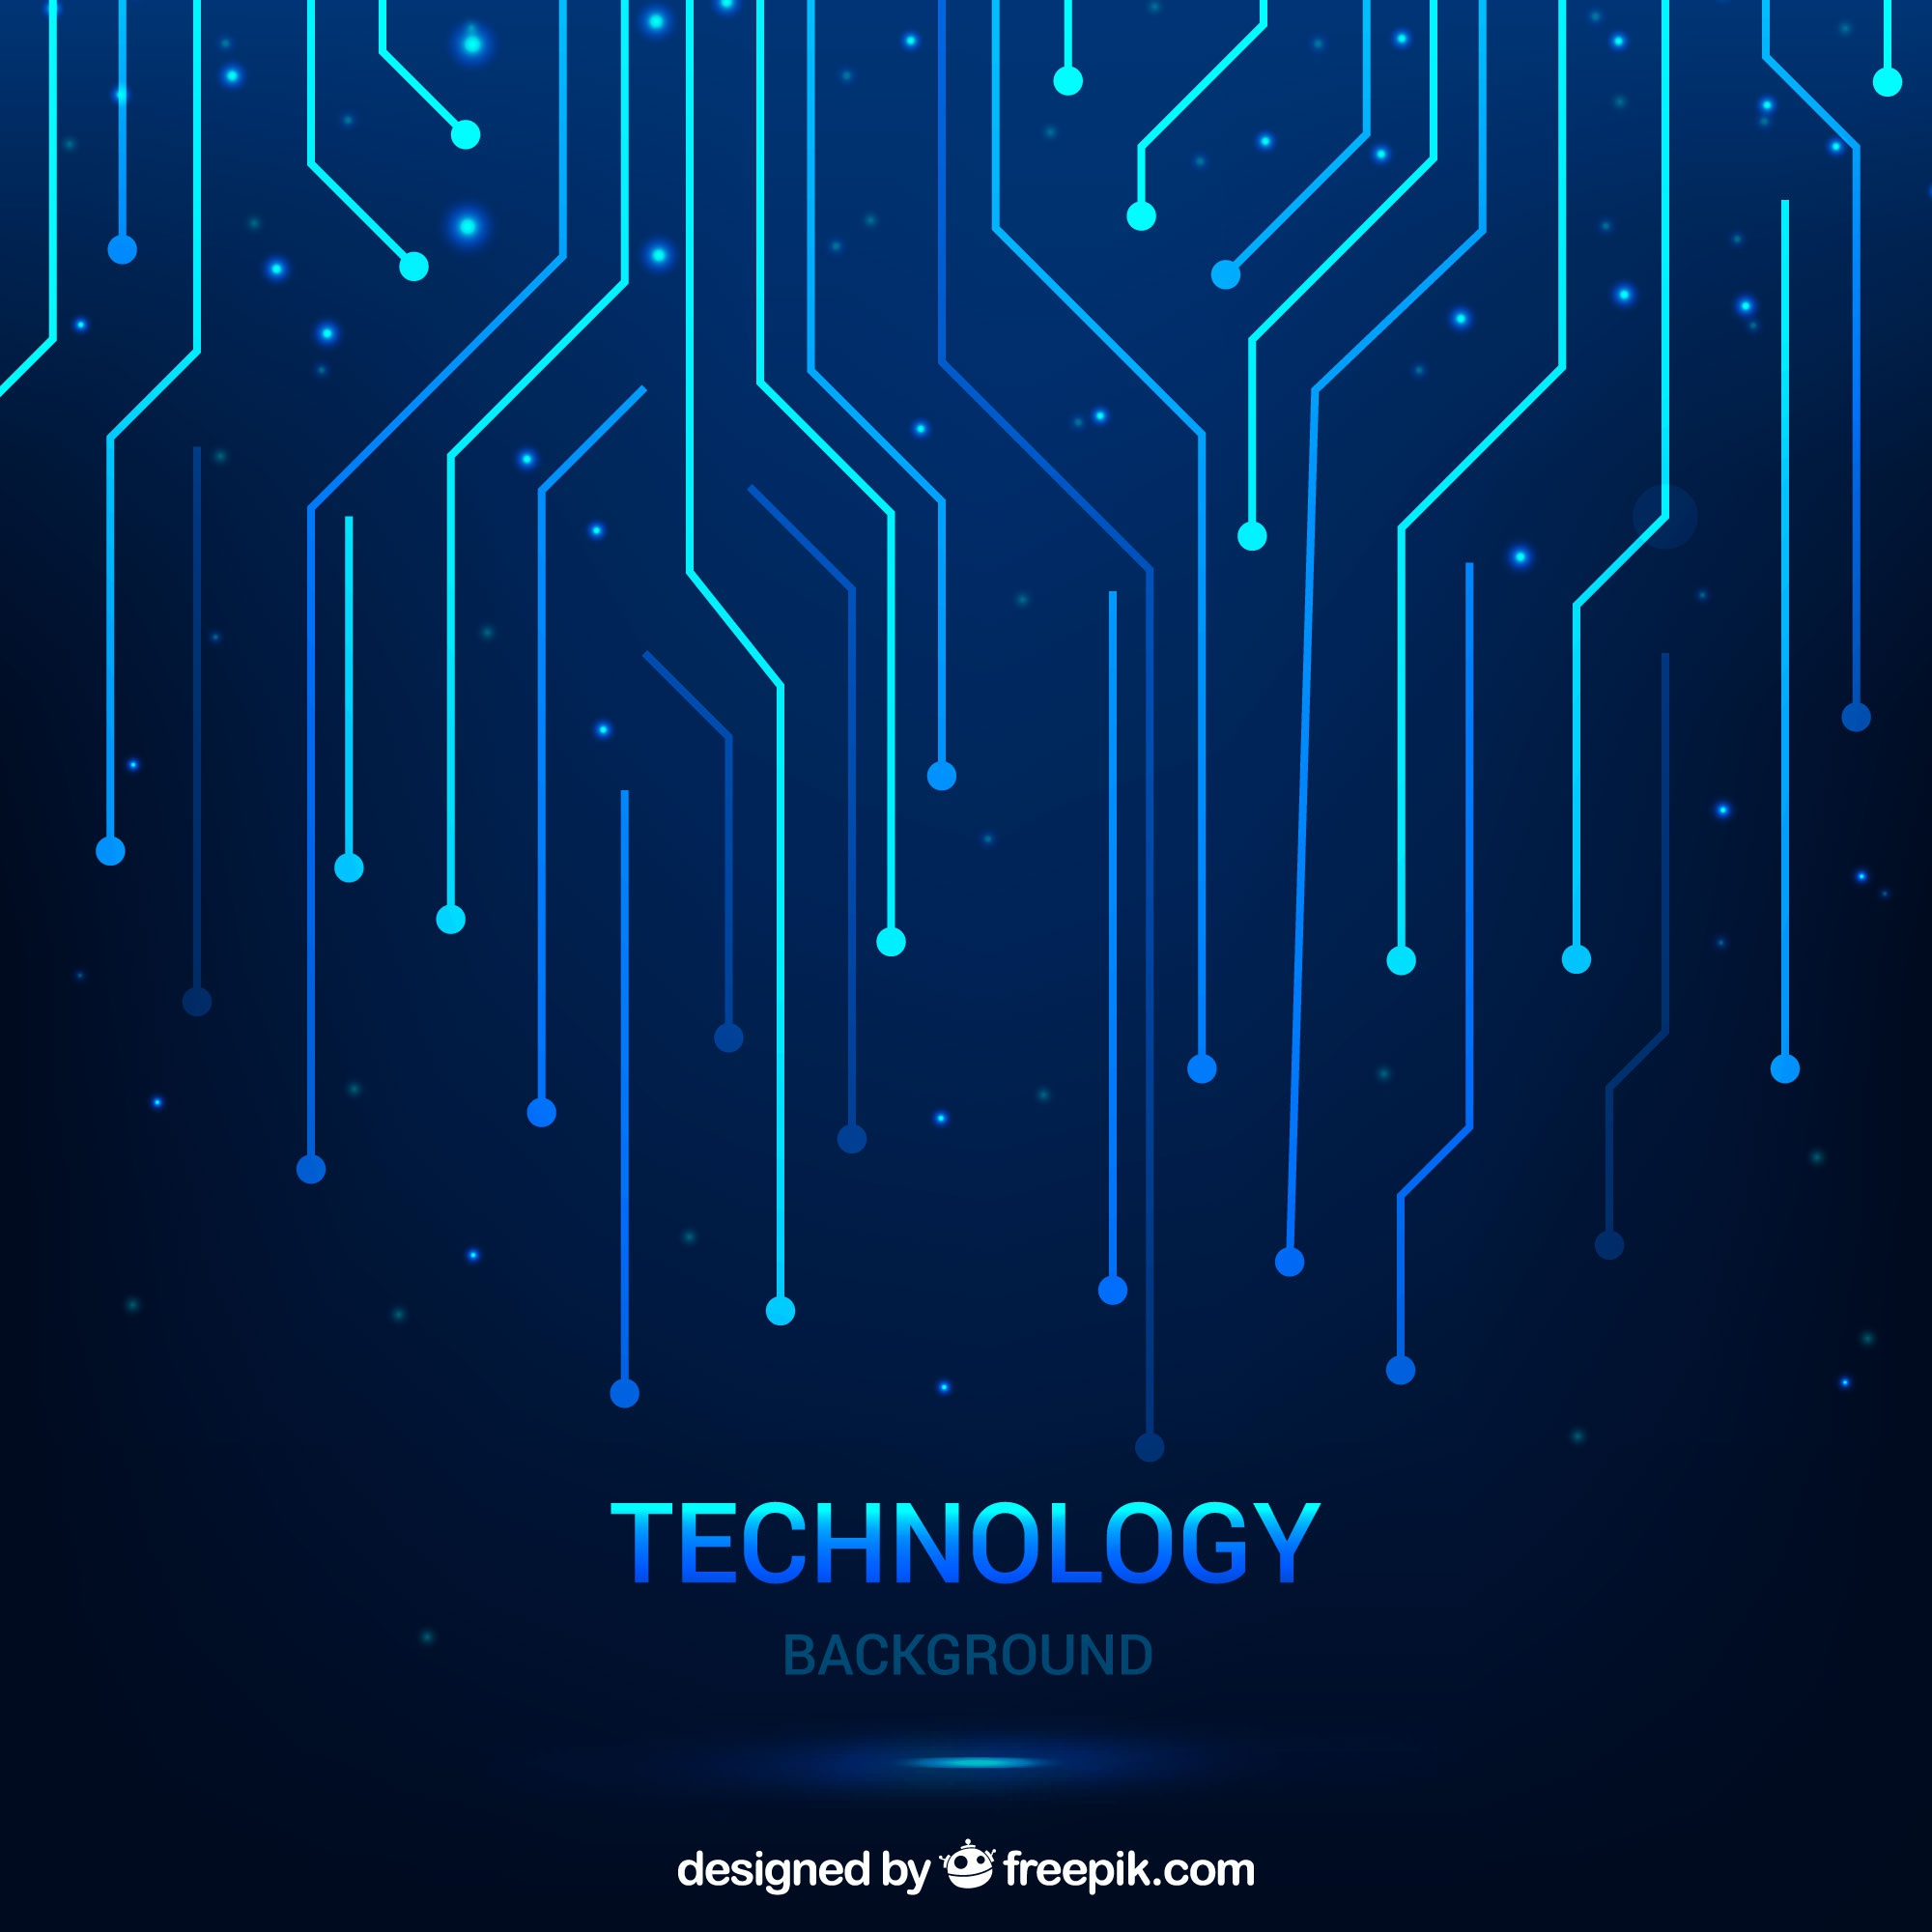 Technological background with lines